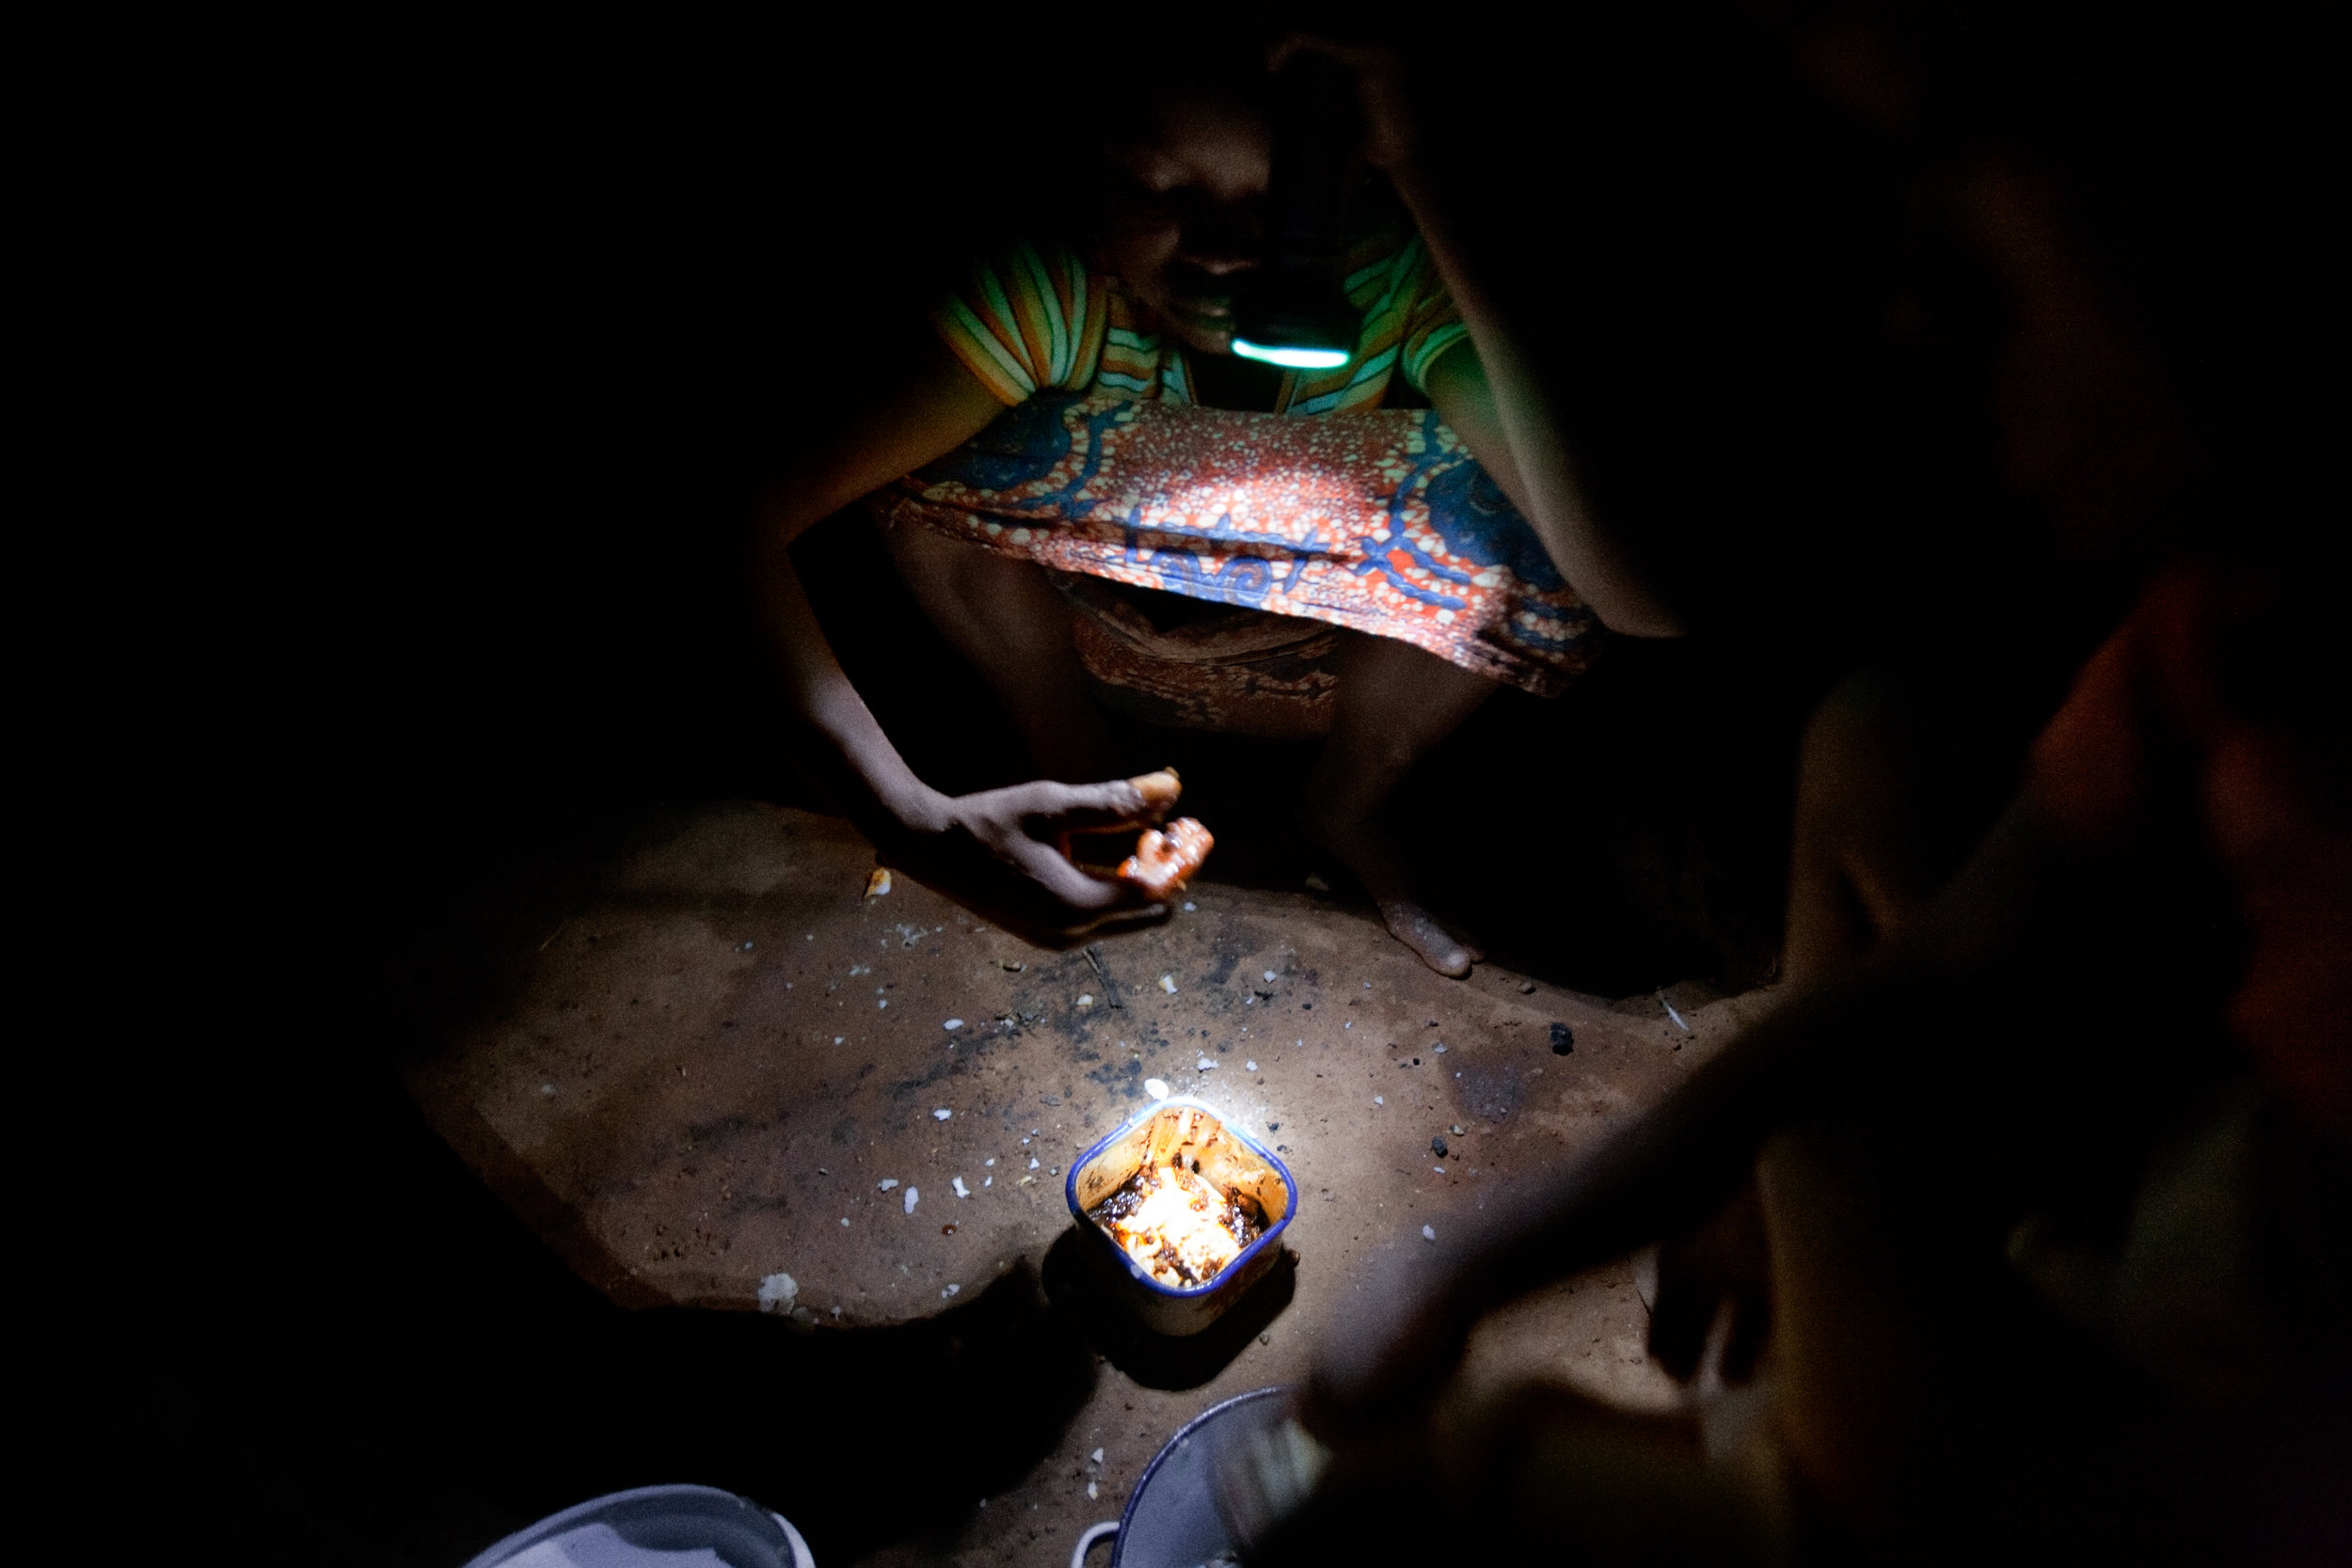 A young girl eats dinner in her home in Voggu, Northern Region, Ghana, on Nov. 17, 2009.